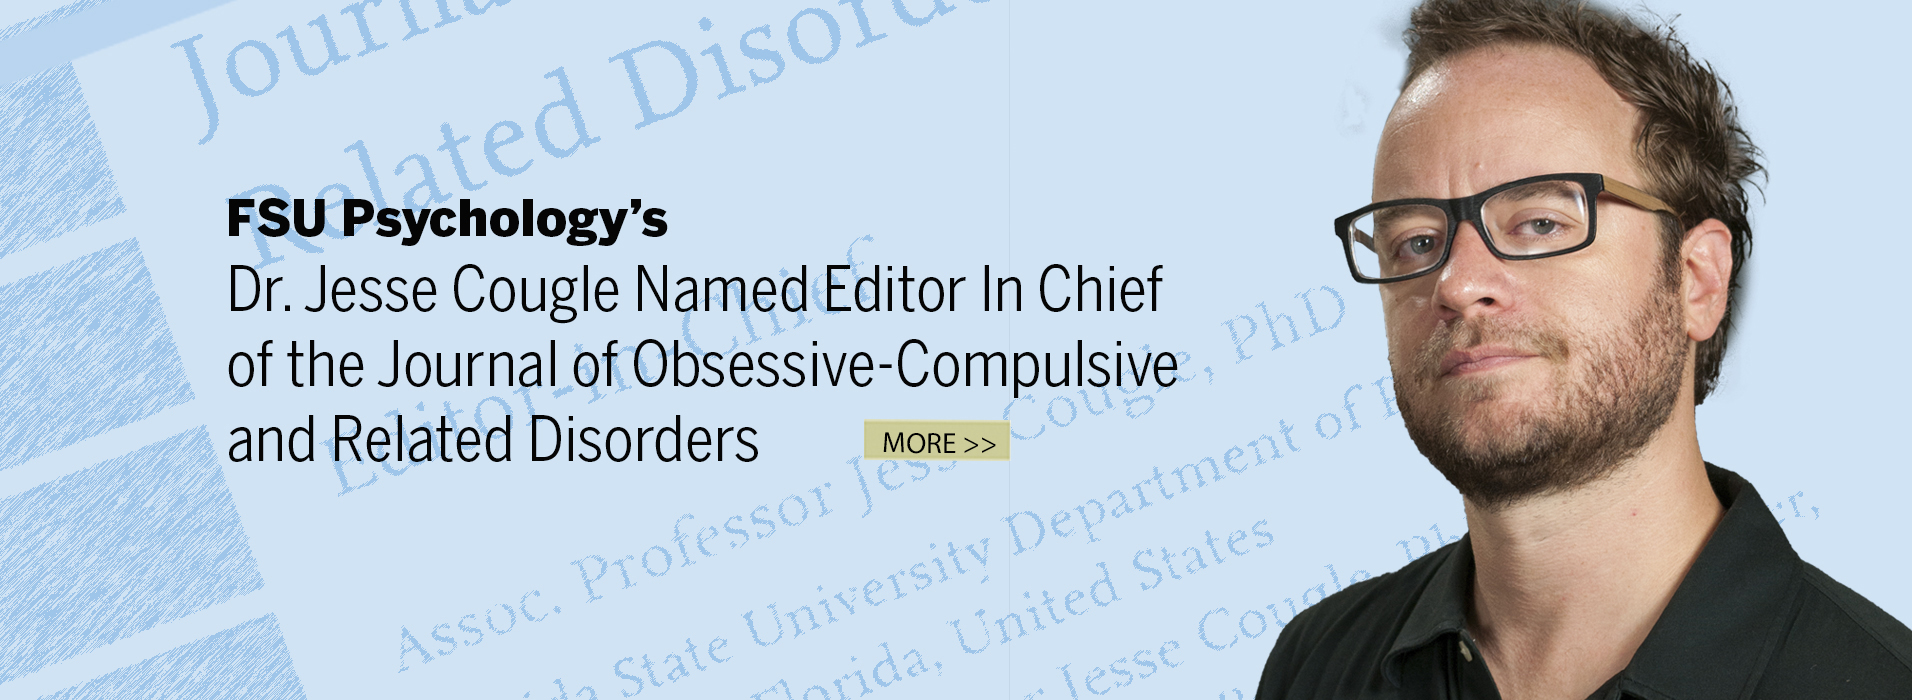 Dr. Jesse Cougle Named Editor In Chief Of Journal Of Obsessive-Compulsive and Related Disorders